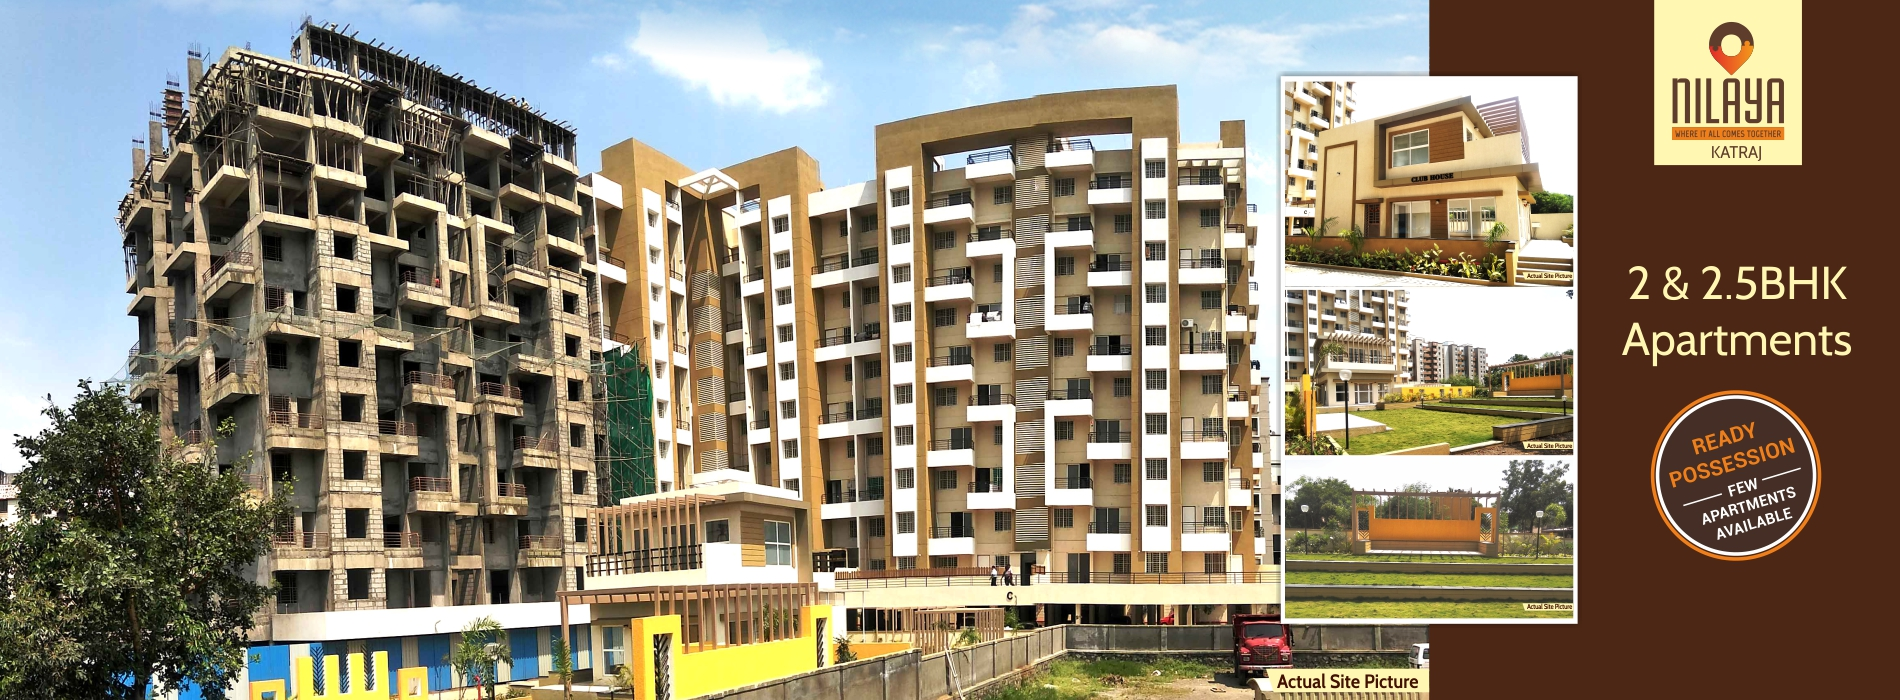 3BHK - 4BHK Flats, Apartments in Baner